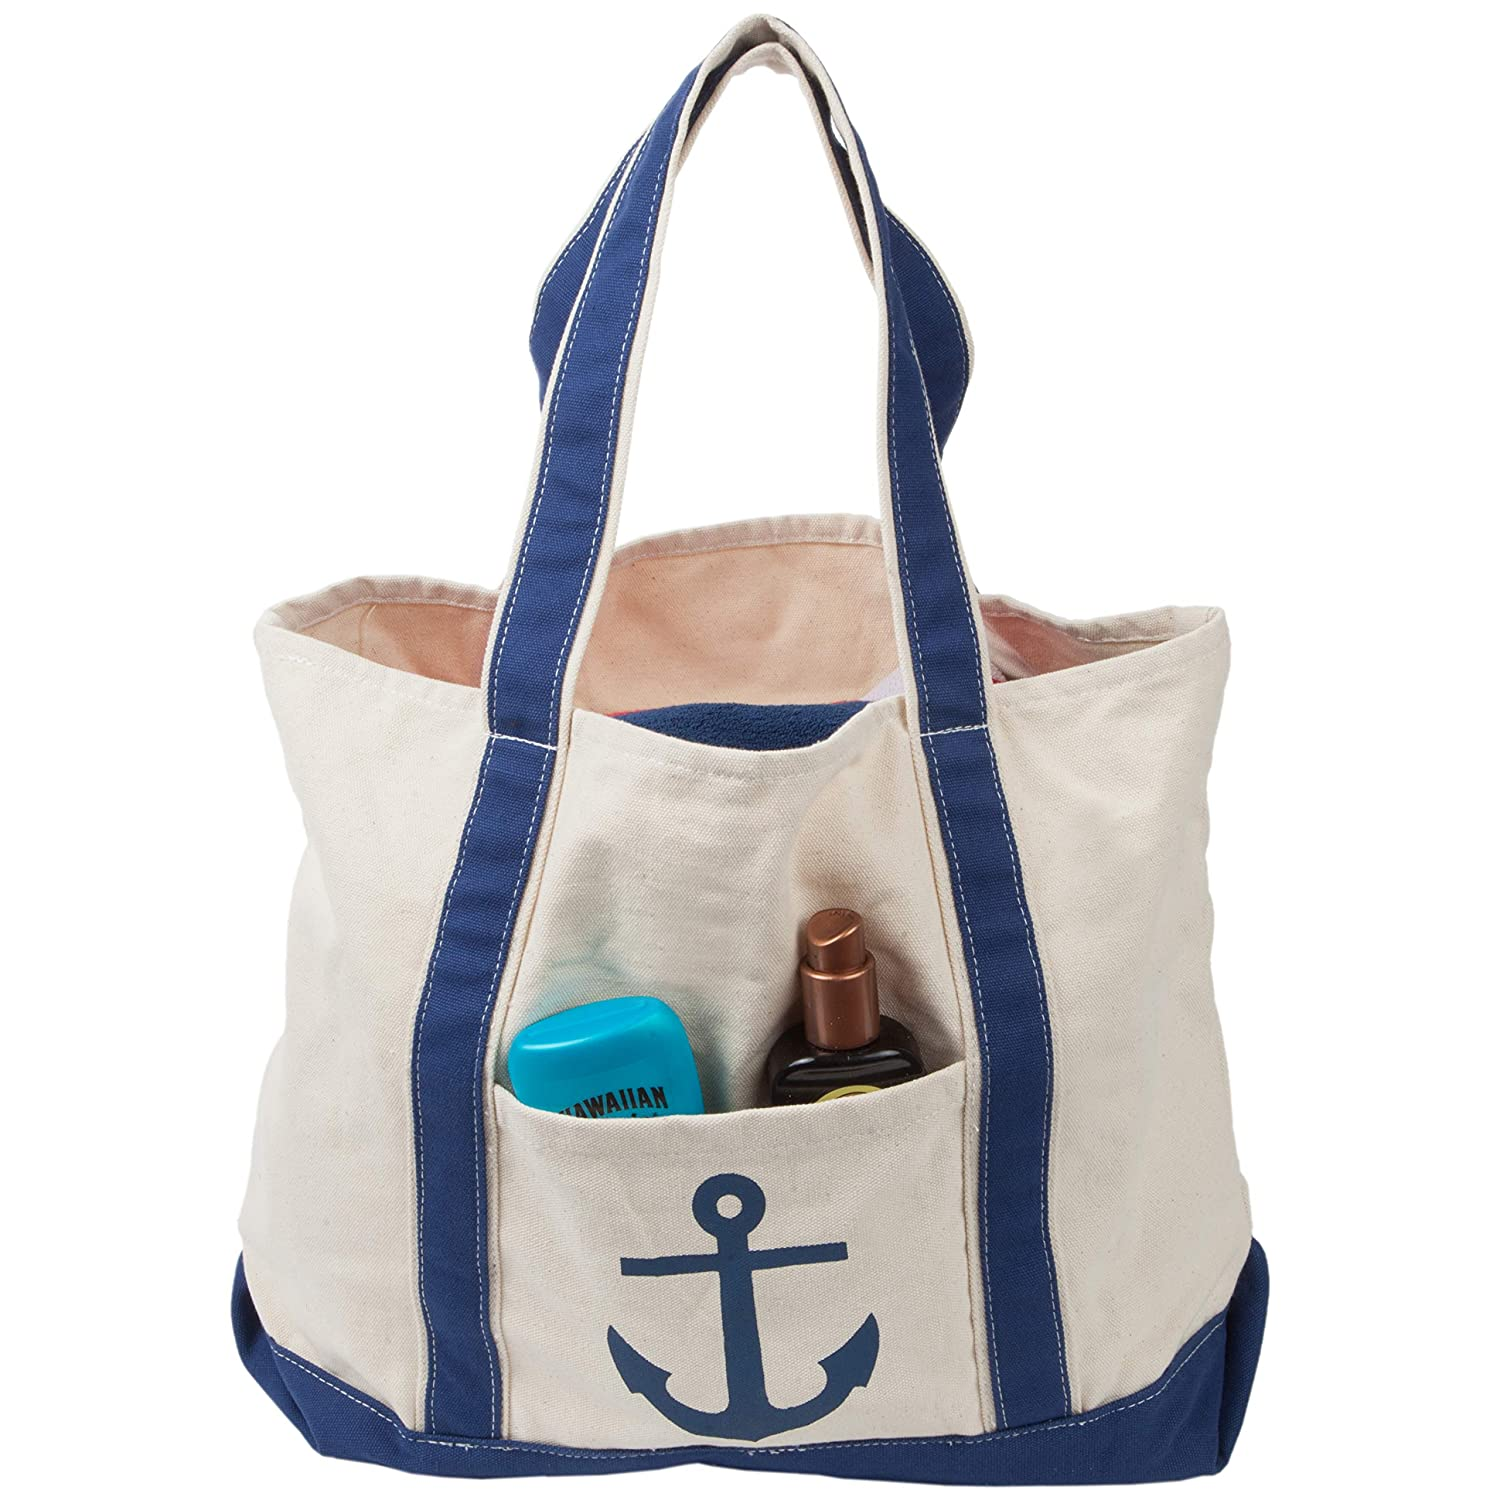 SC Recreational Canvas Anchor Beach Bag /& Pool Tote XL with Carabiner for Keys